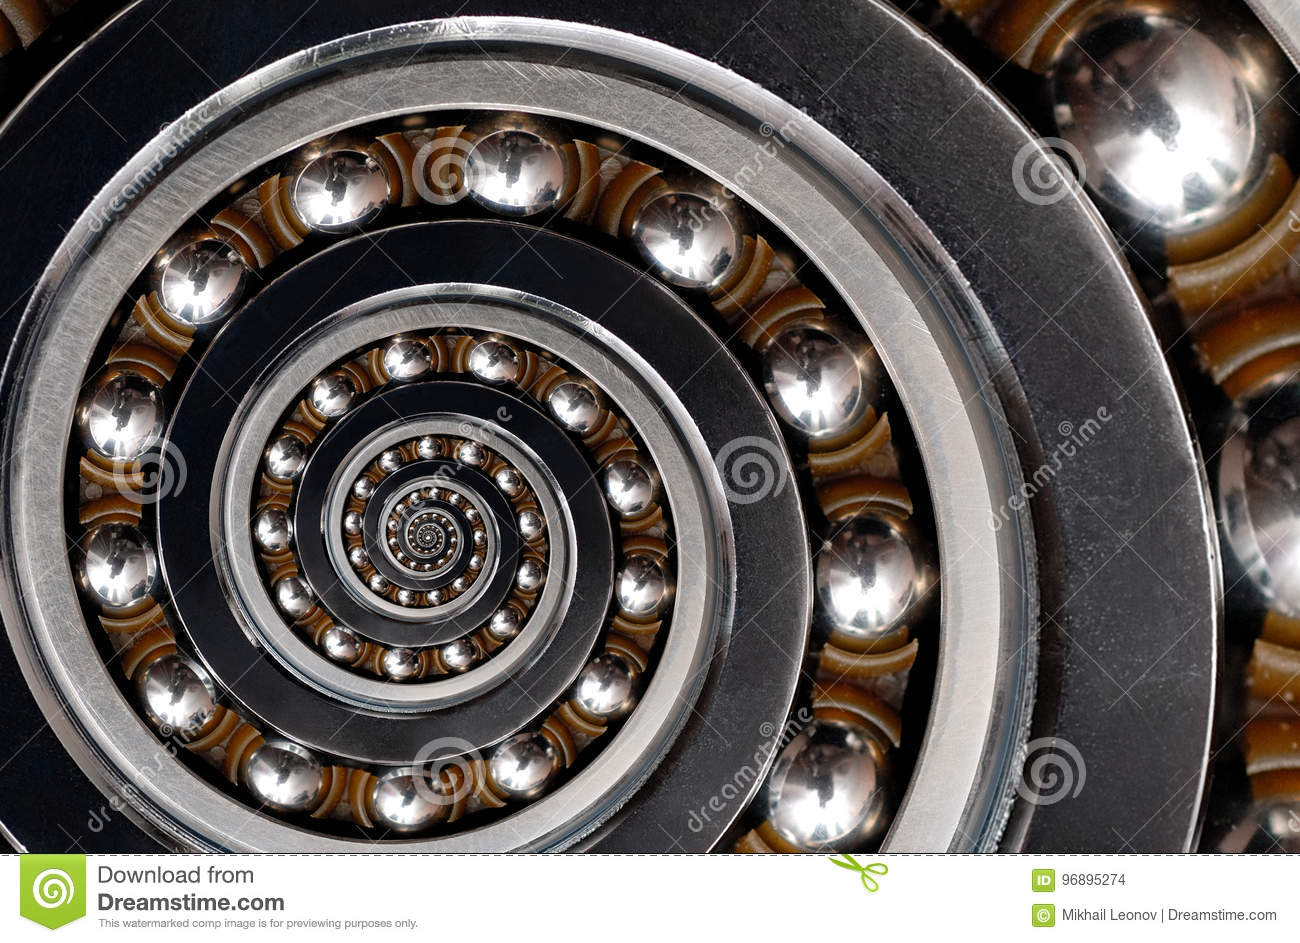 Funny incredible unrealistic industrial Ball Bearing spiral abstract pattern background. Spiral machinery abstract fractal pattern